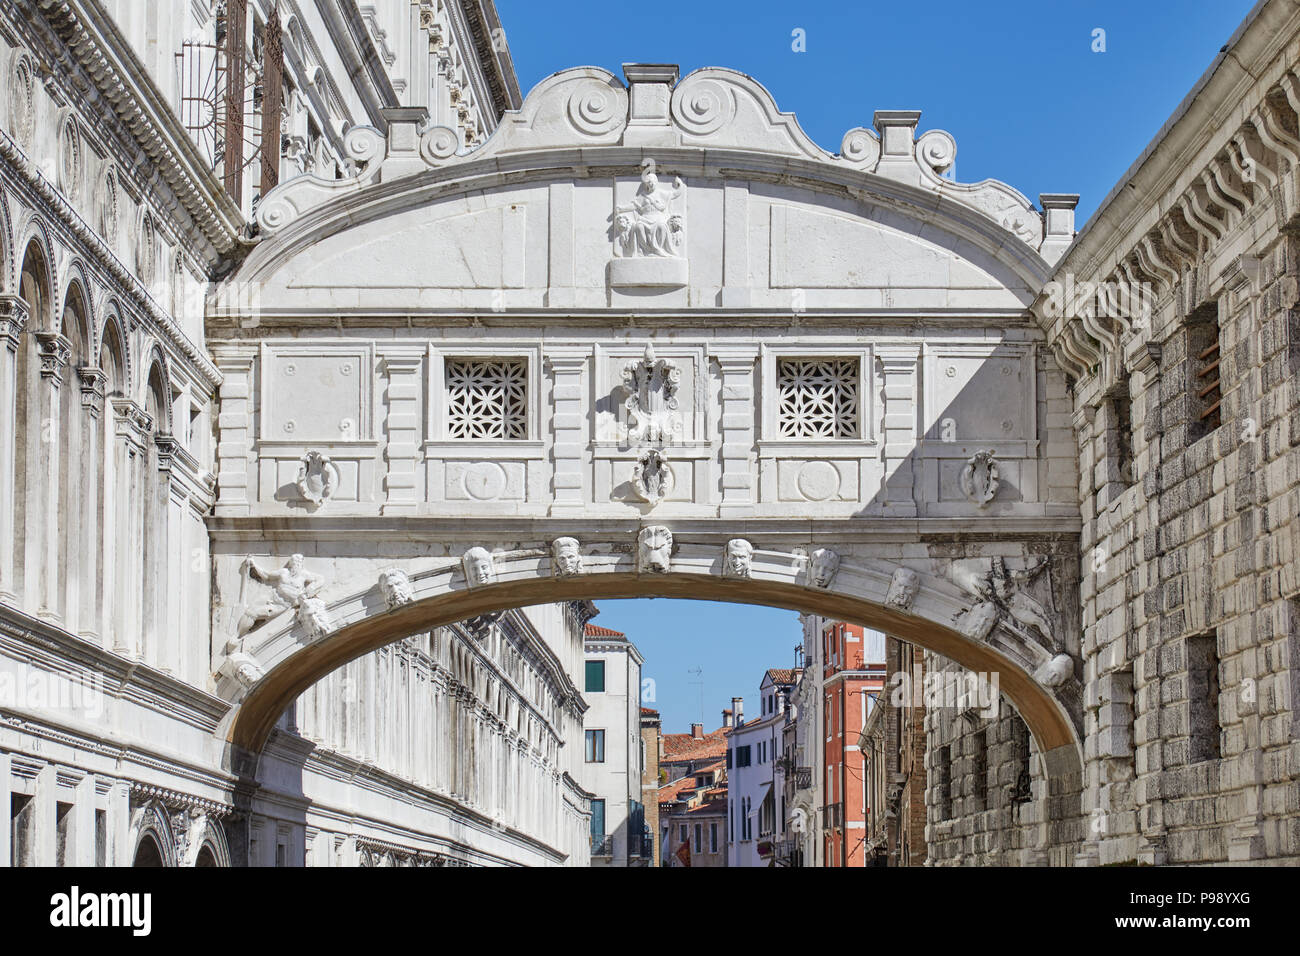 Bridge of Sighs in Venice, blue sky in a sunny day in Italy - Stock Image